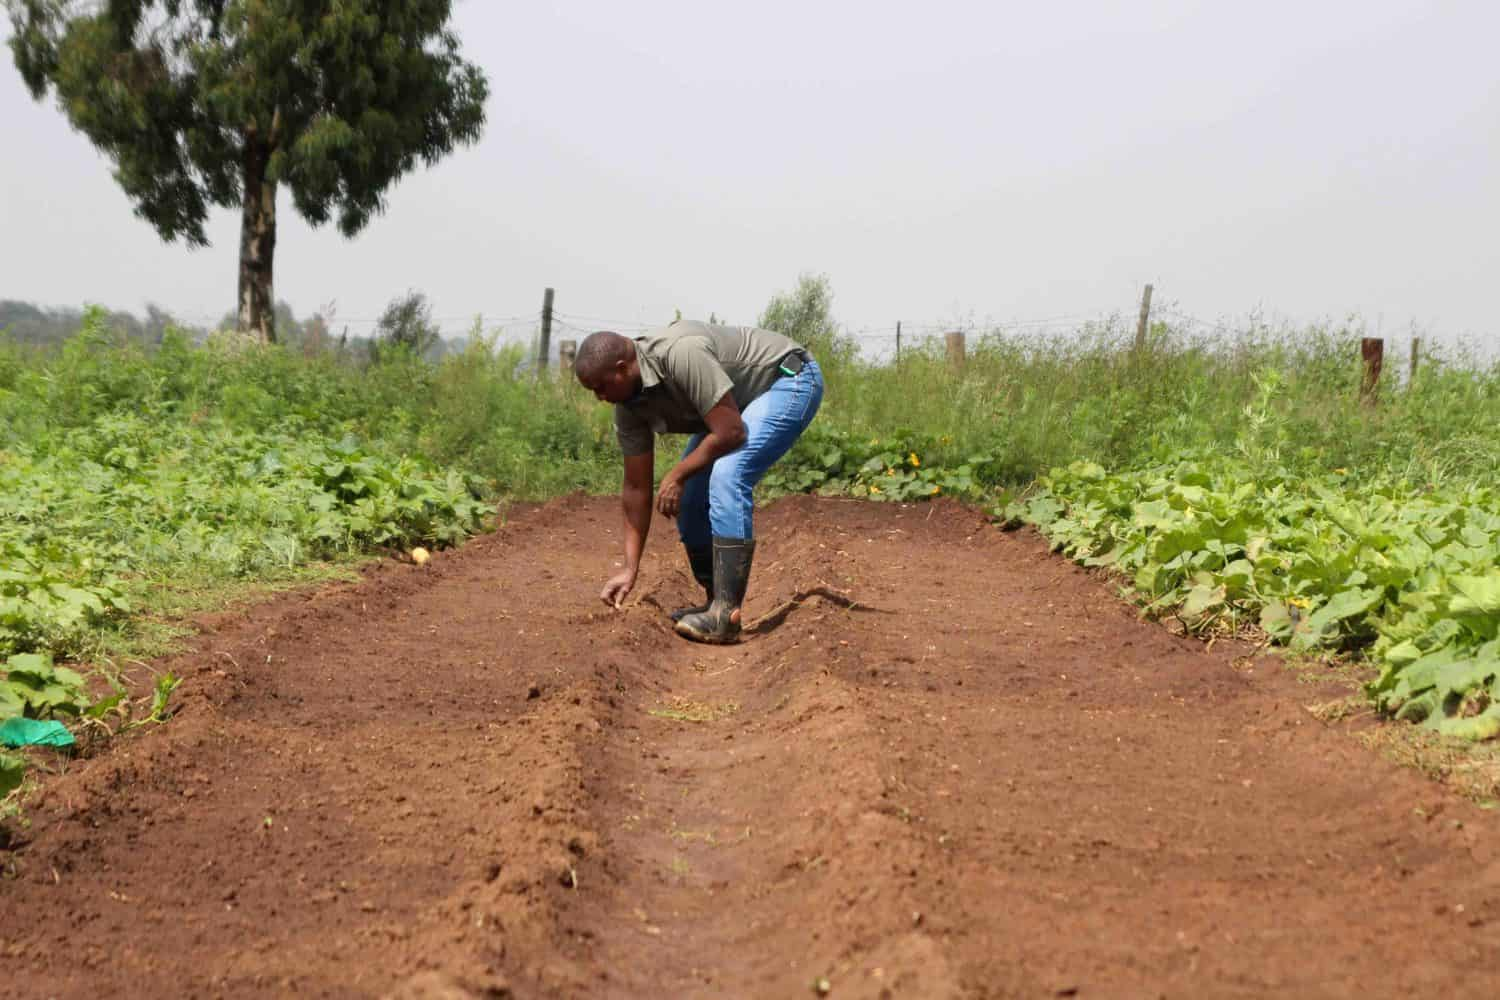 Nhlanhla Zuma is inspecting some of the garlic that he's planted in his farm, which he expects to harvest sometime later in the year. Photo: Magnificent Mndebele